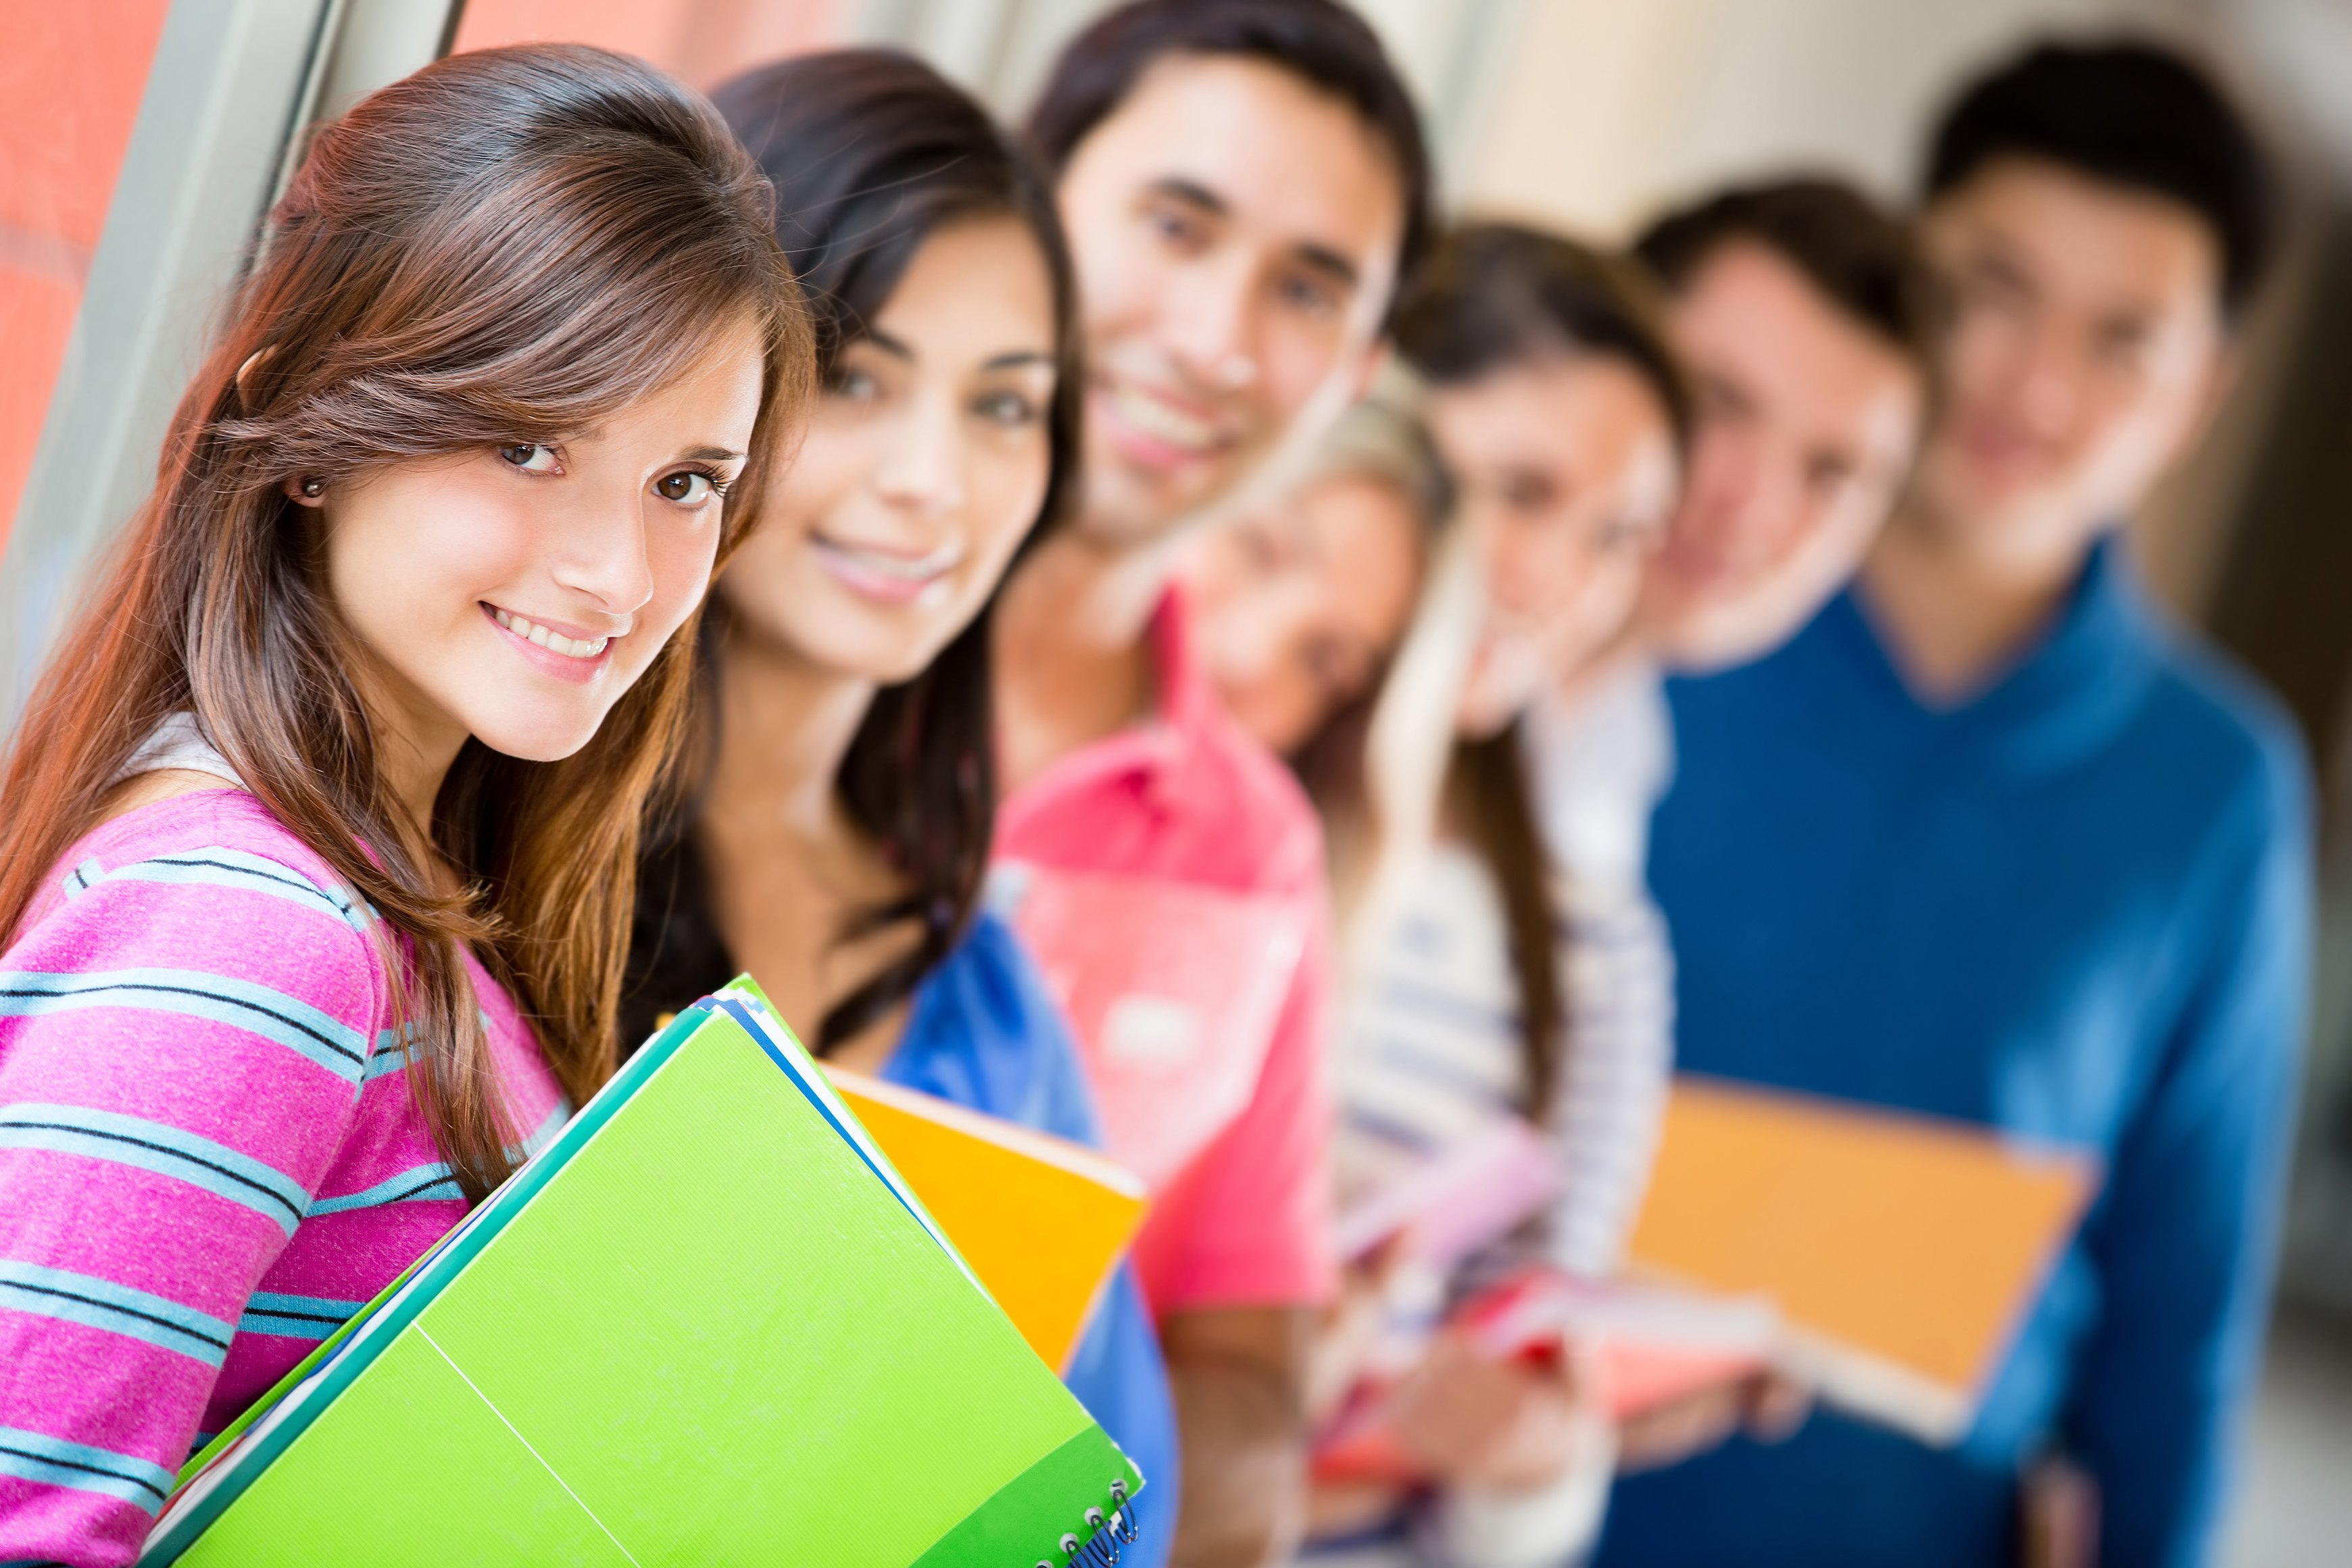 student essays uk Your worries will disappear with high quality, completely unique and affordable uk essay writing assistance offered to you anytime for any subject.